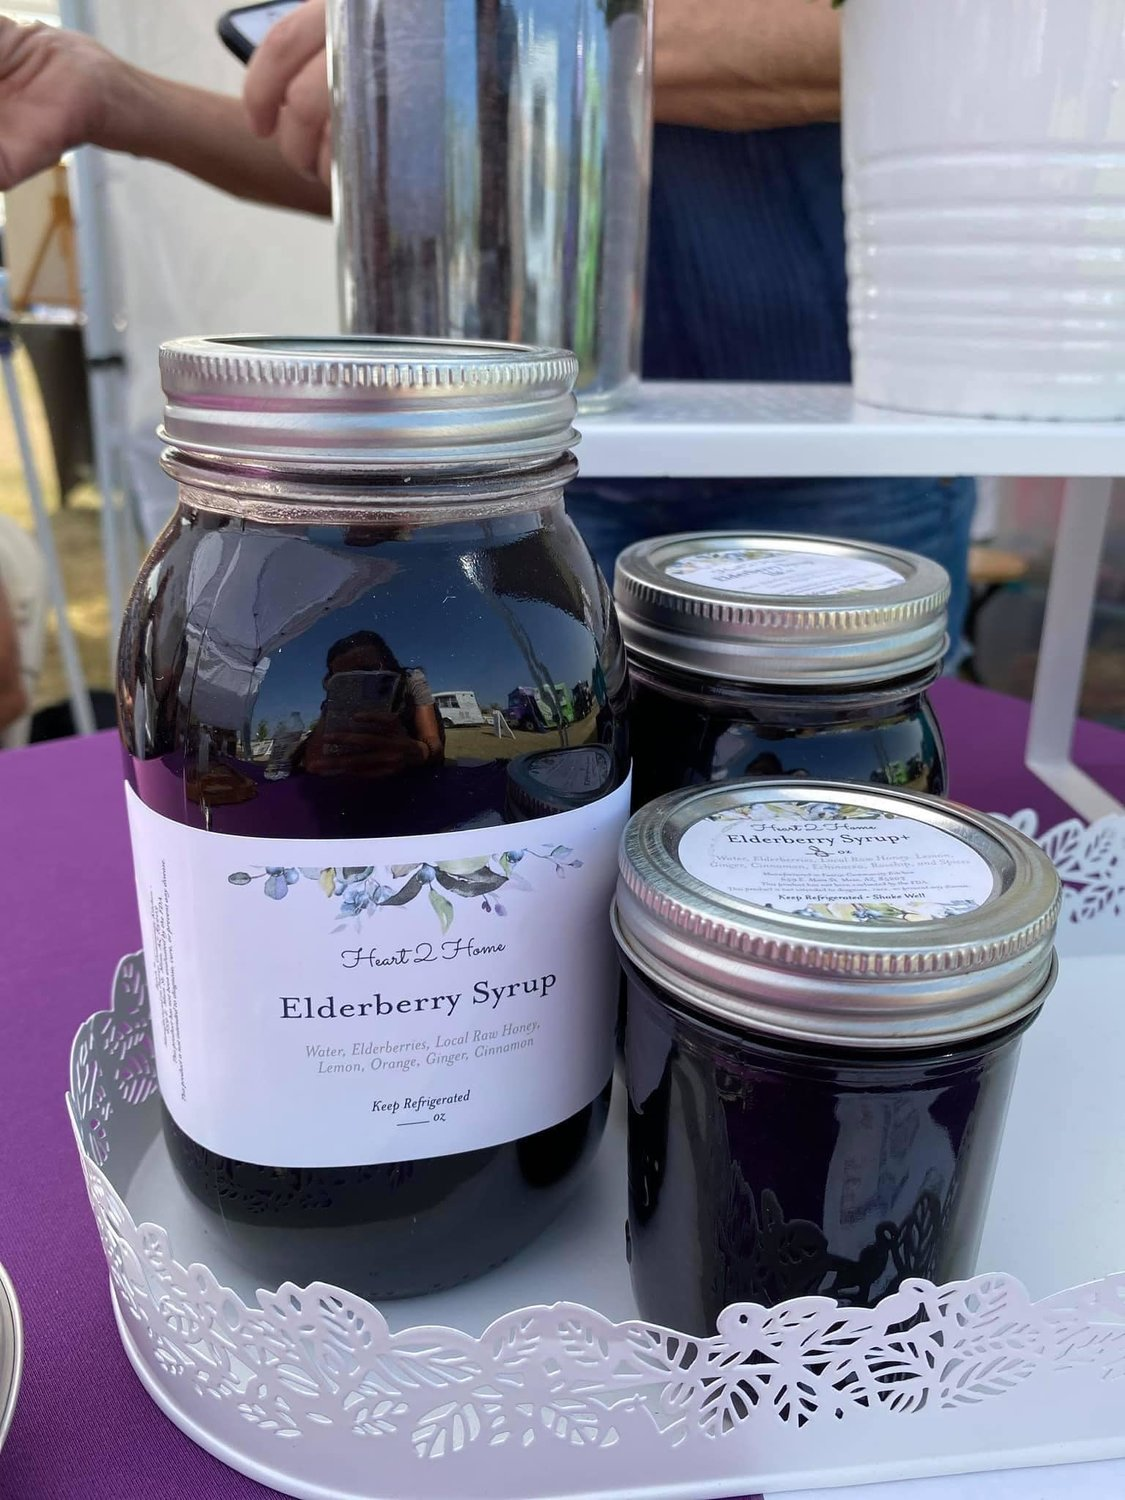 Heart 2 Home - Elderberry of Avondale offers a variety of elderberry products, including syrups.